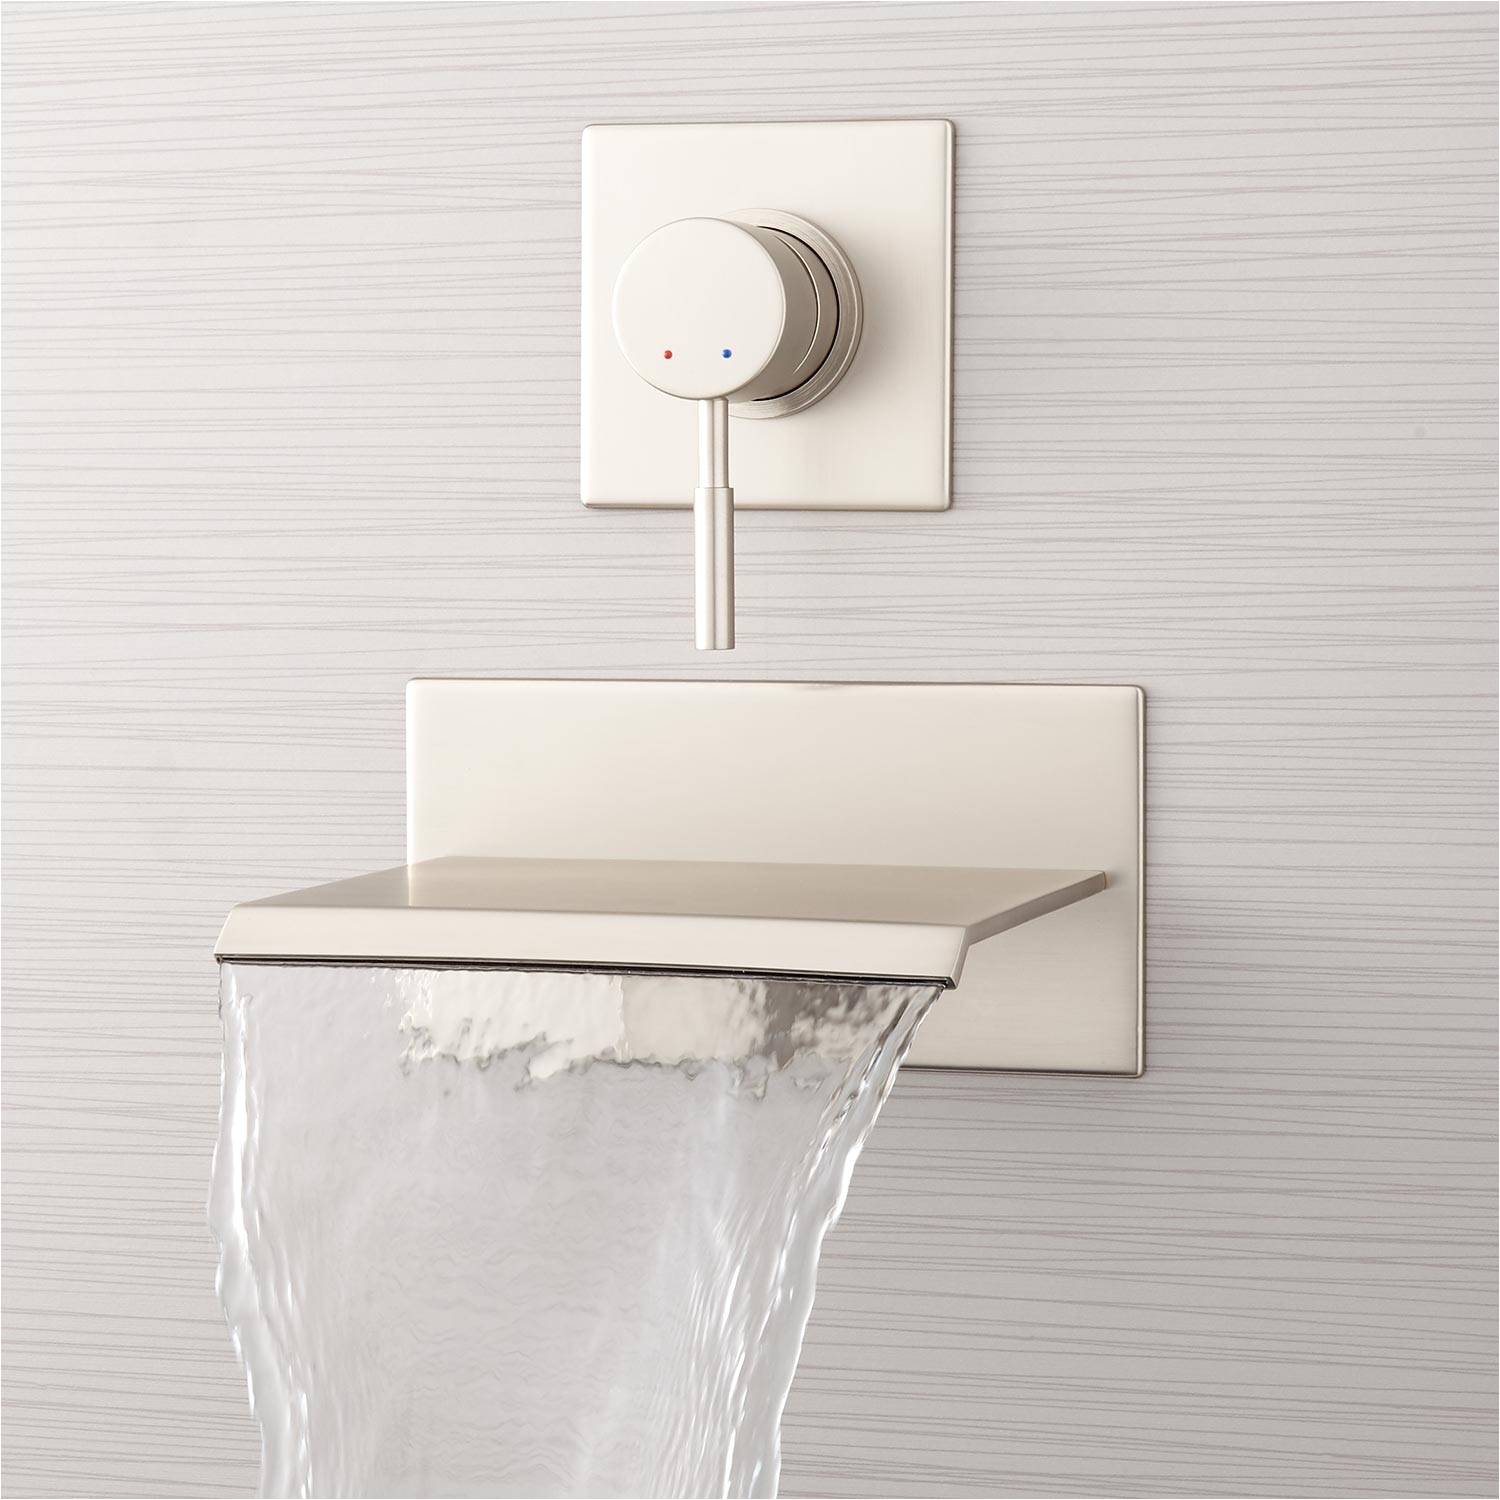 lavelle wall mount tub faucet with waterfall spout